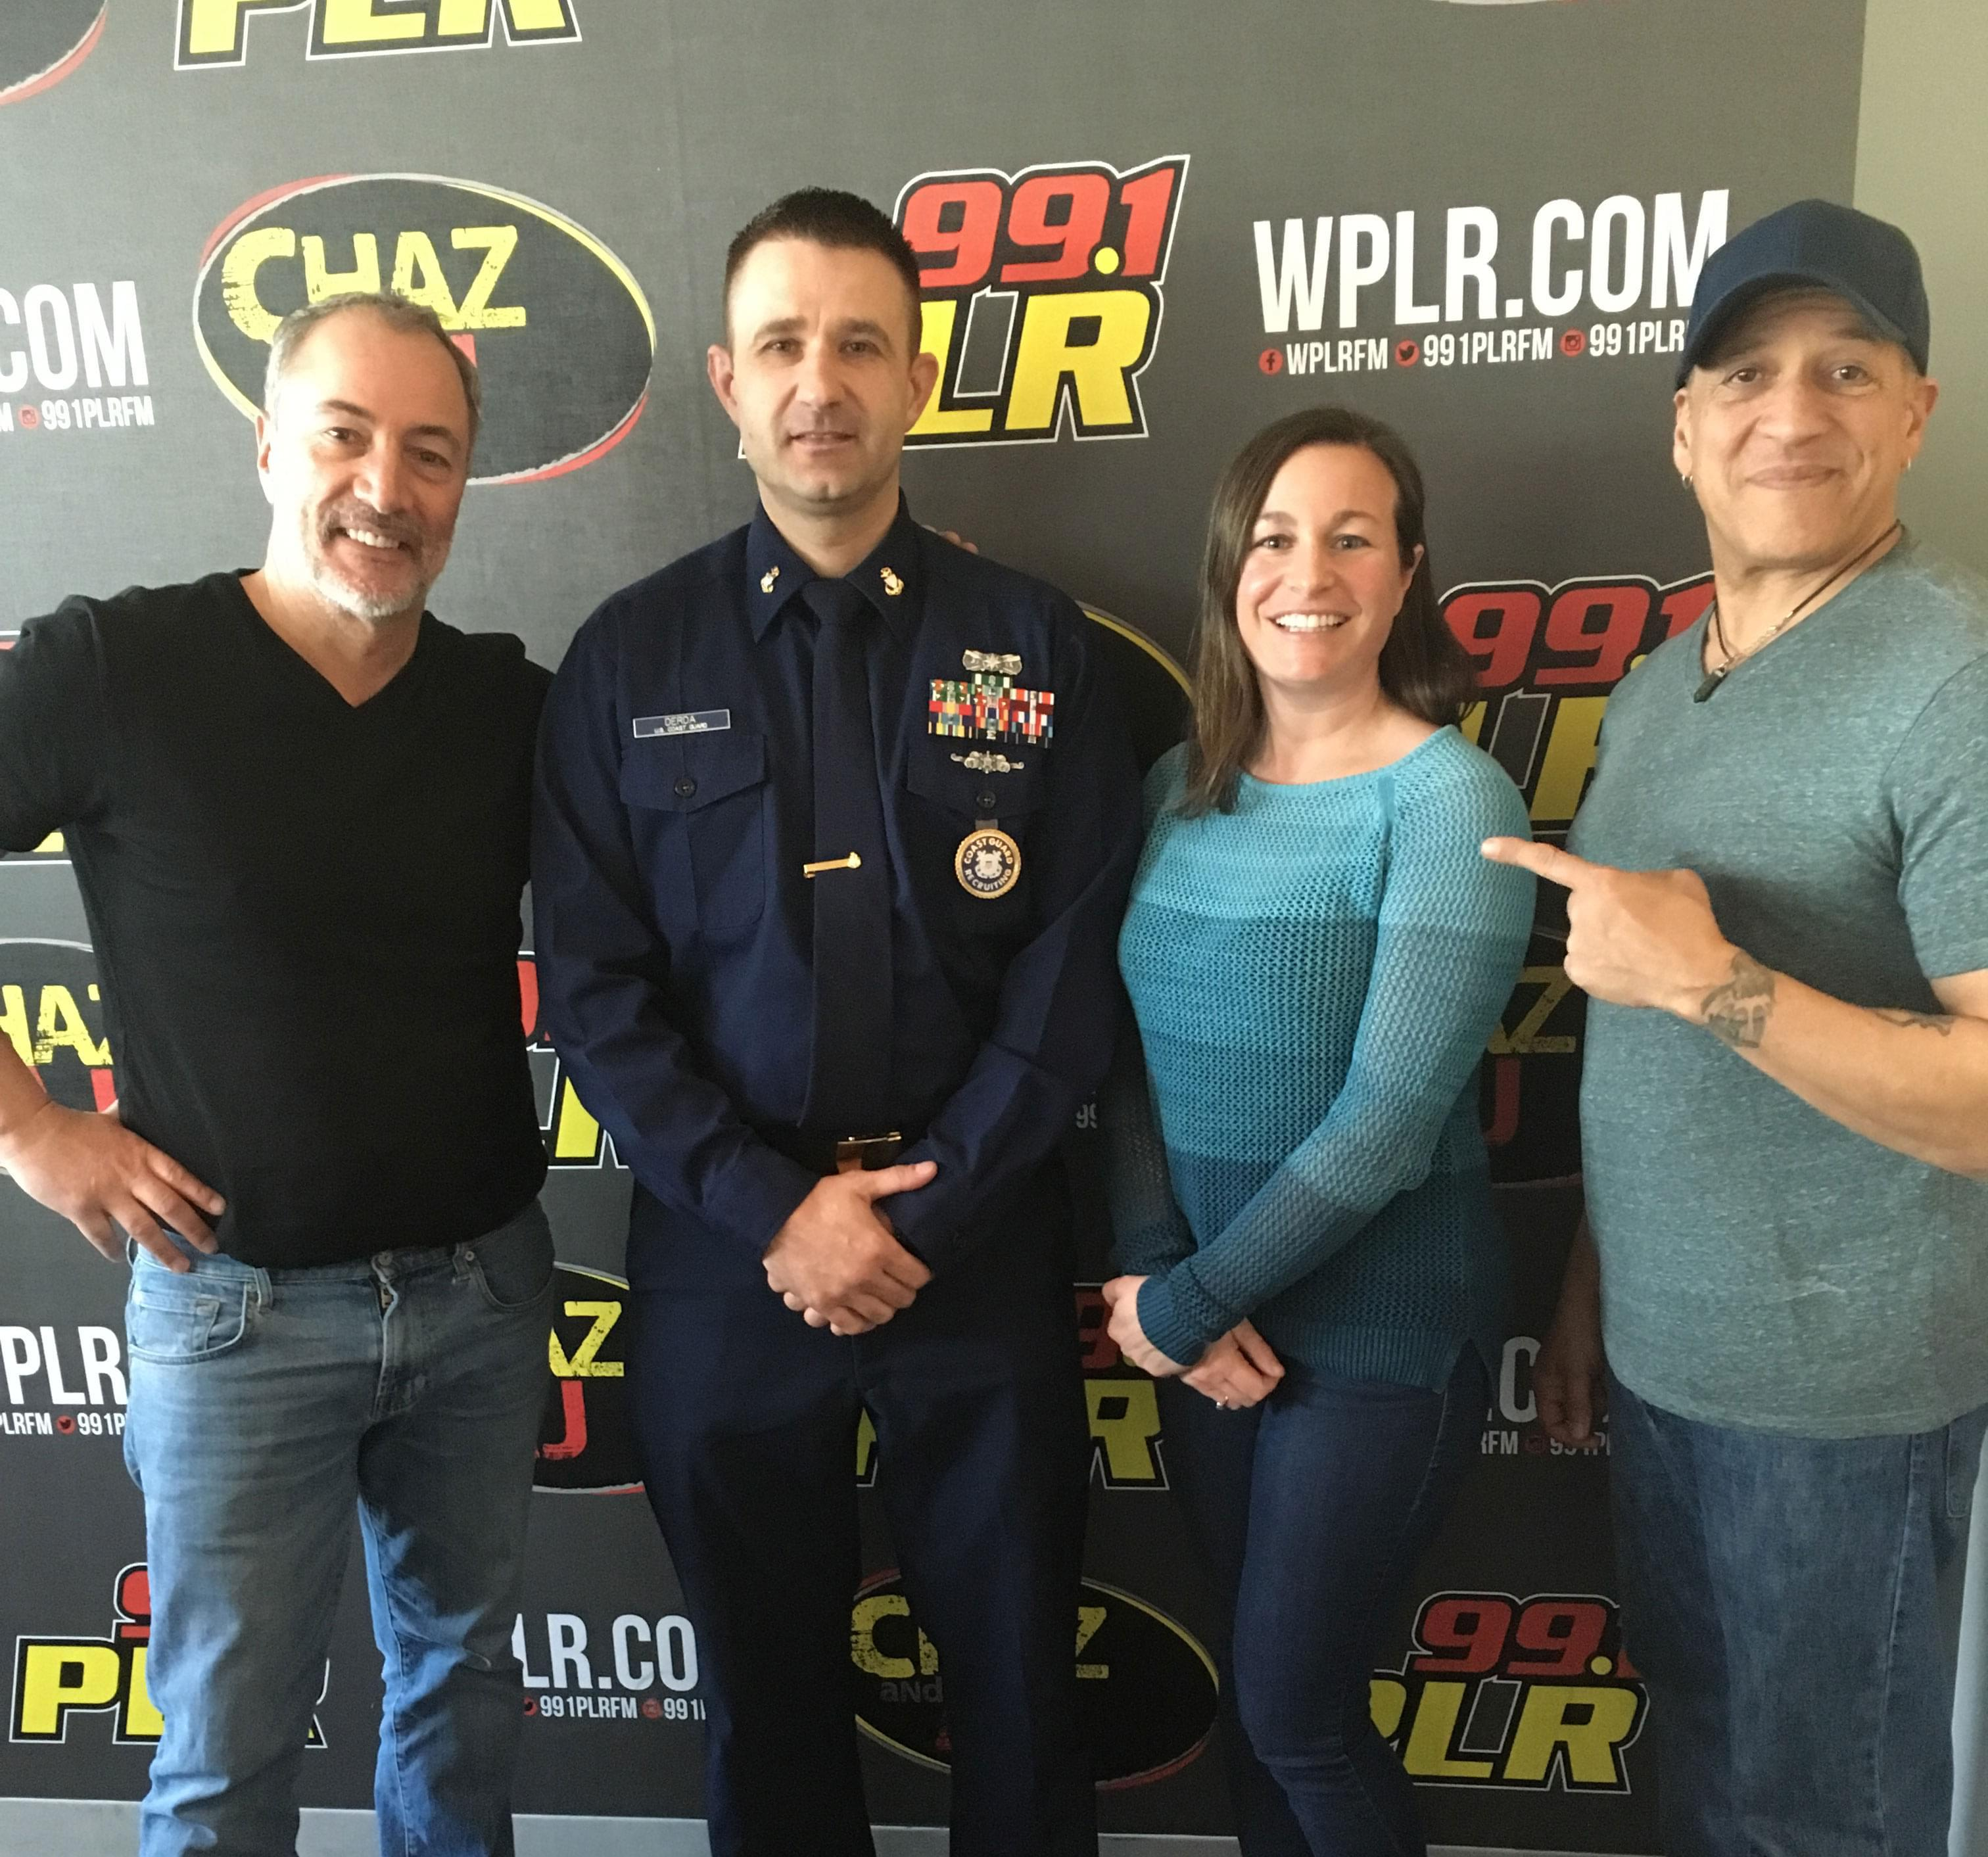 On Today's Chaz & AJ: Joe The Weed Guy With News, Chief Derda with the Coast Guard In Studio